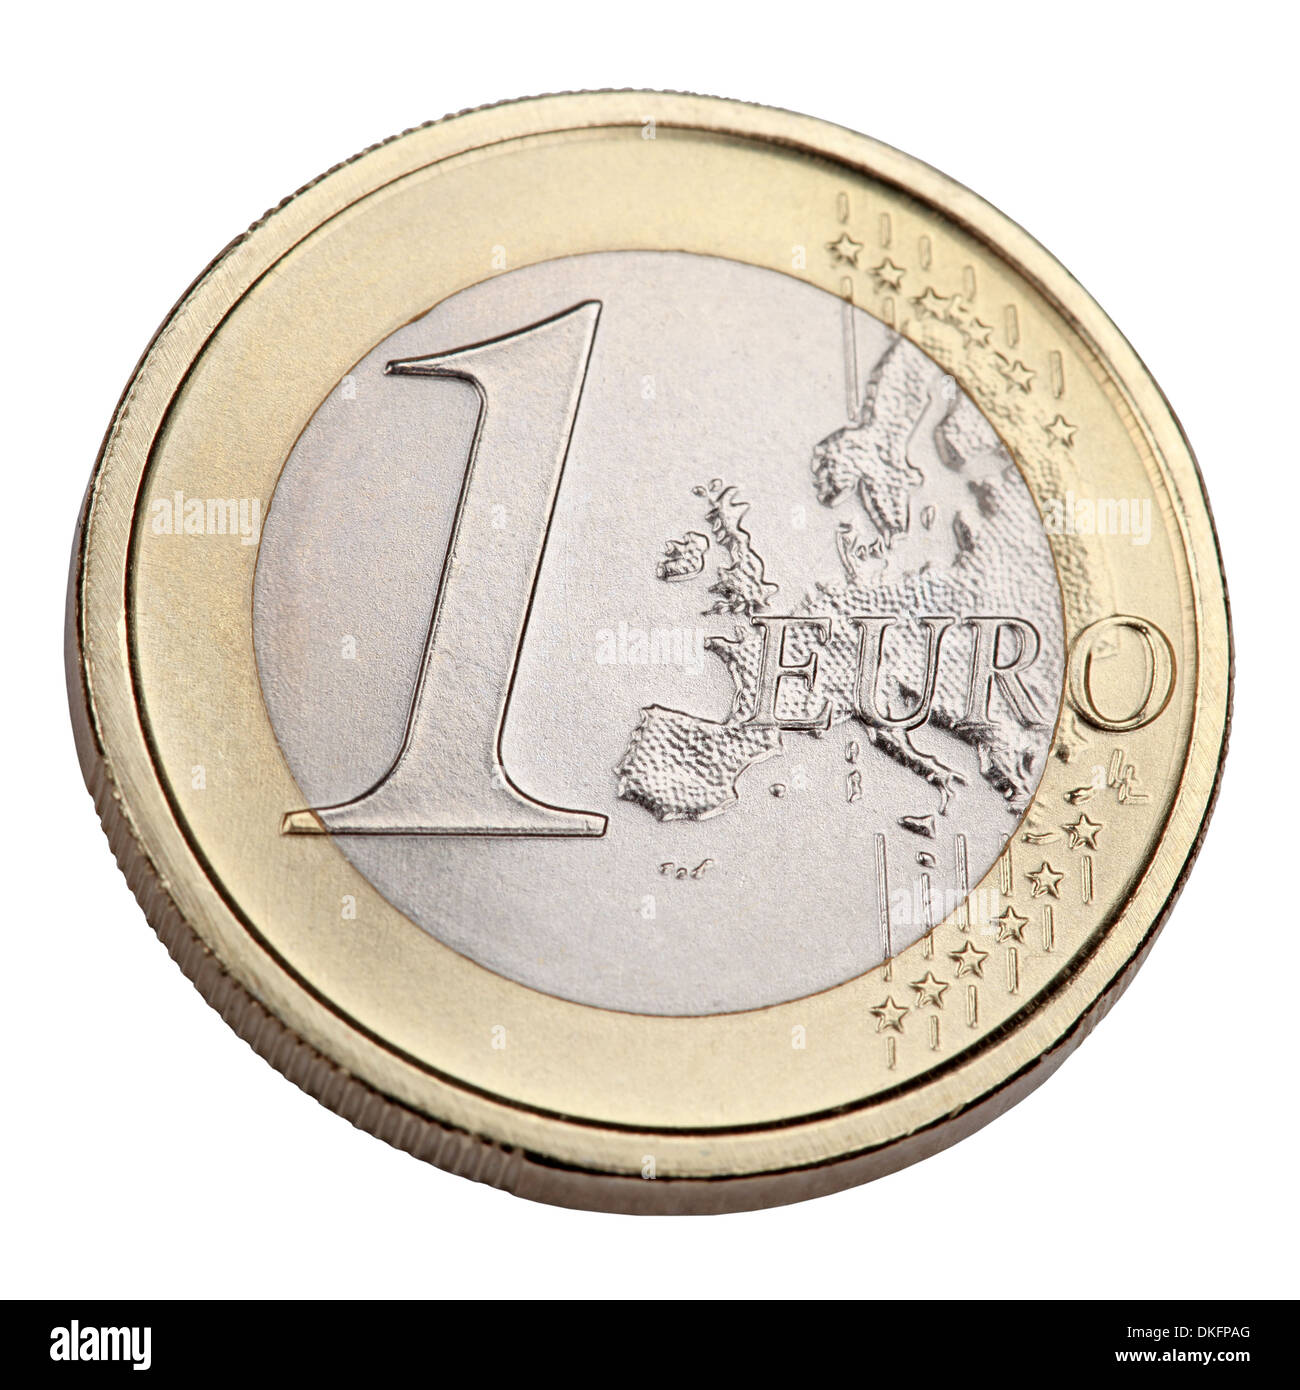 One Euro coin, money isolated on a white background - Stock Image